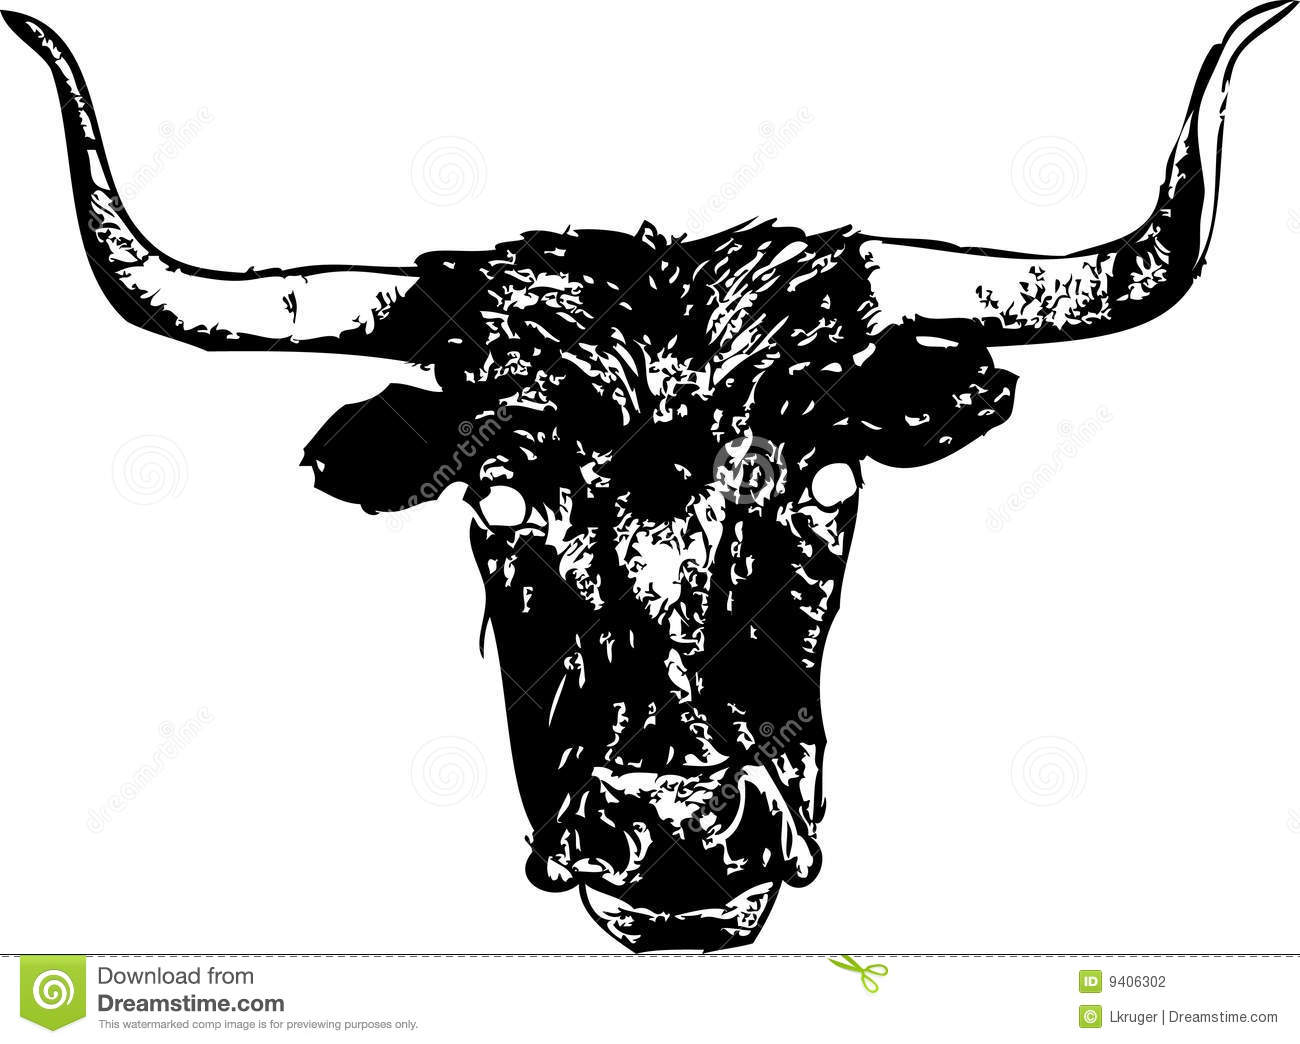 Longhorn Cattle clipart #6, Download drawings